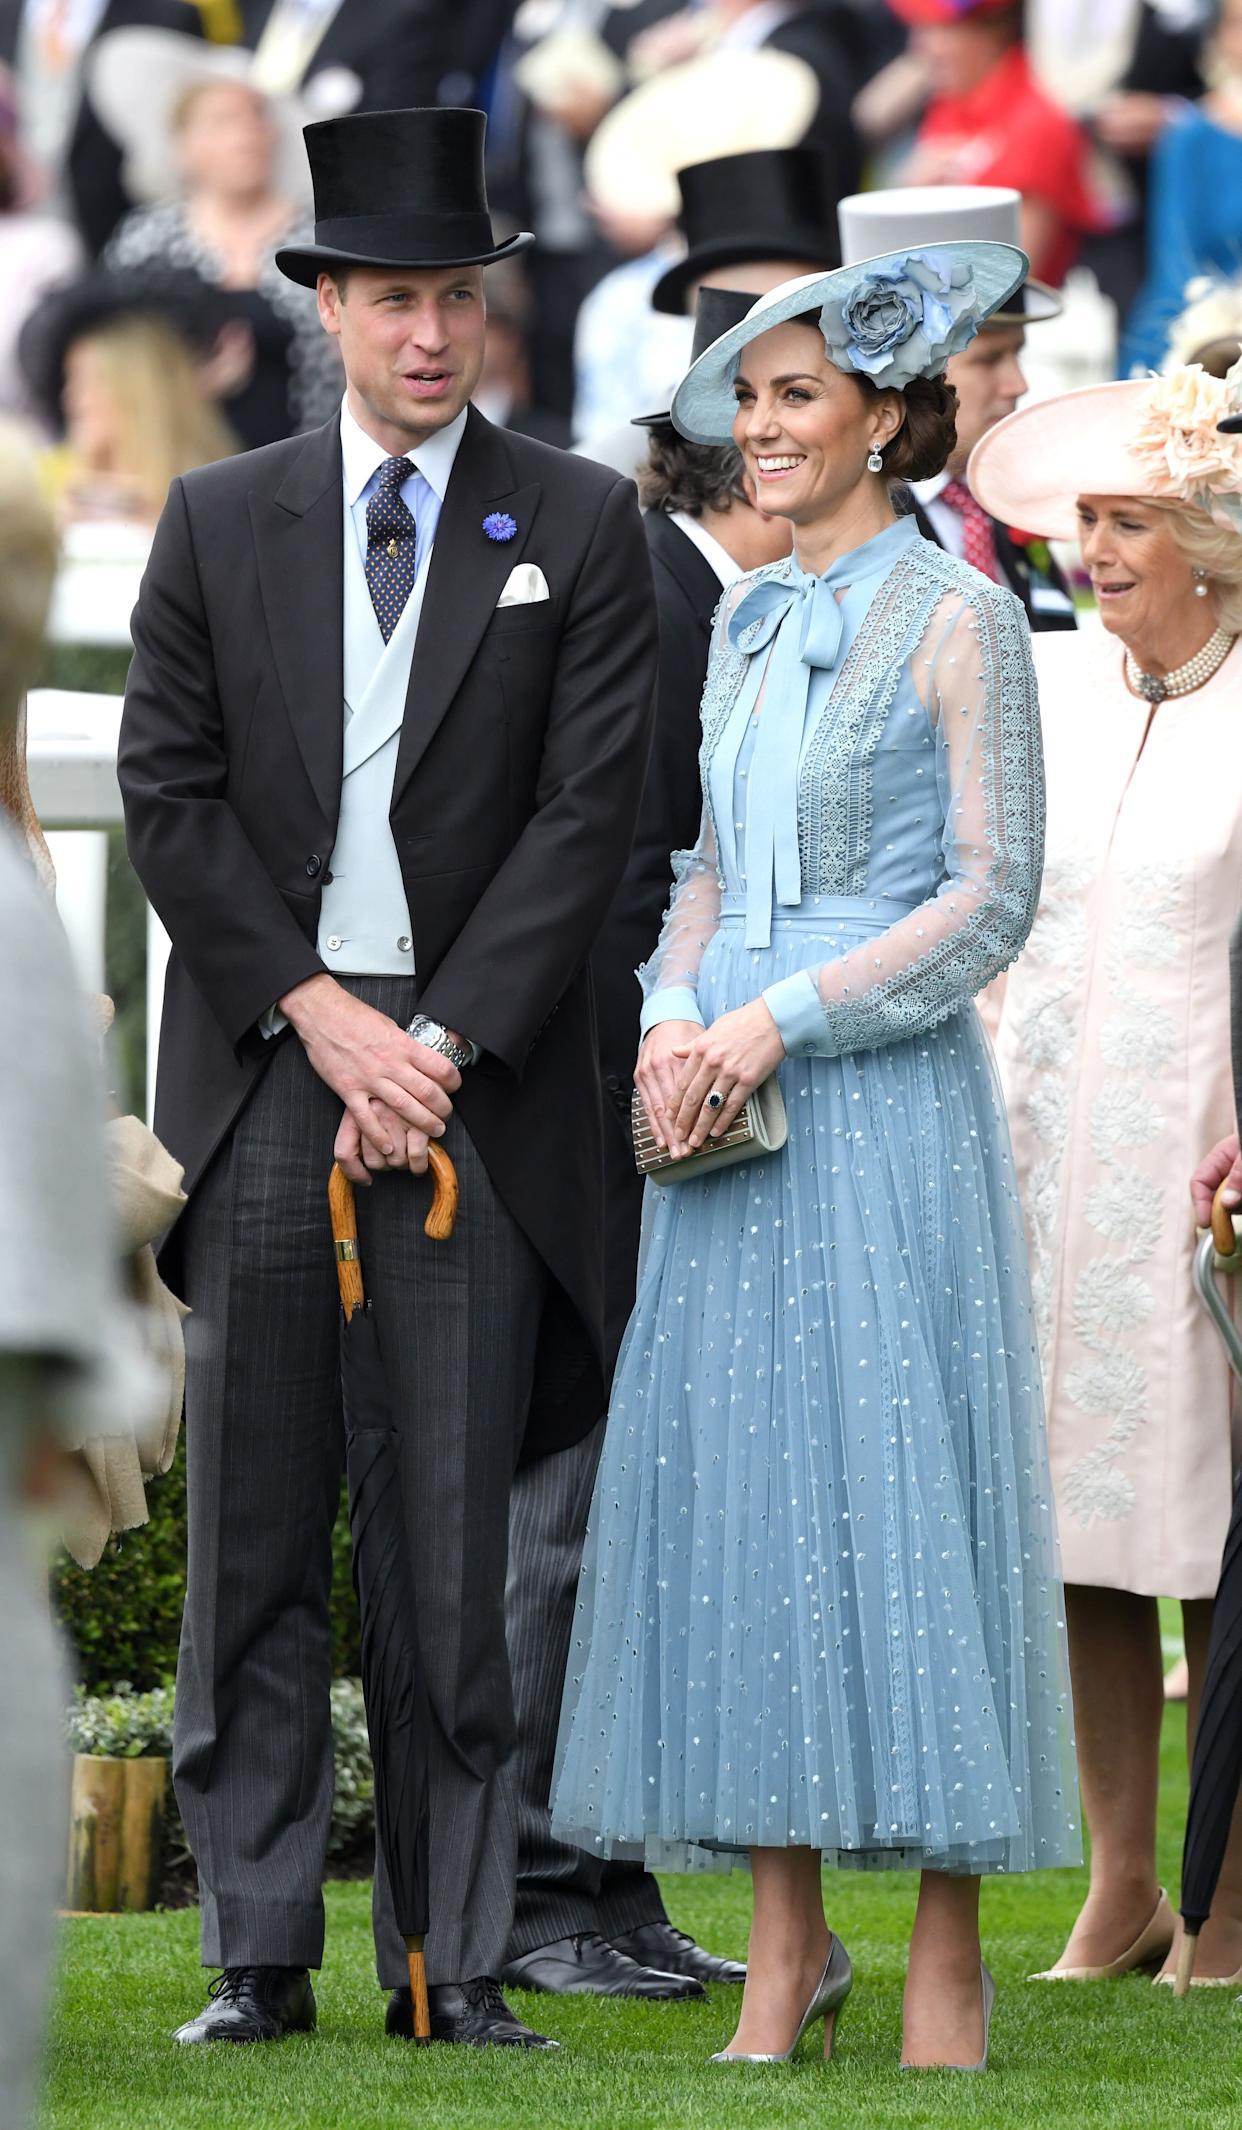 The Duke and Duchess of Cambridge attend day one of Royal Ascot at Ascot Racecourse on June 18 in Ascot, England. (Photo: Karwai Tang via Getty Images)